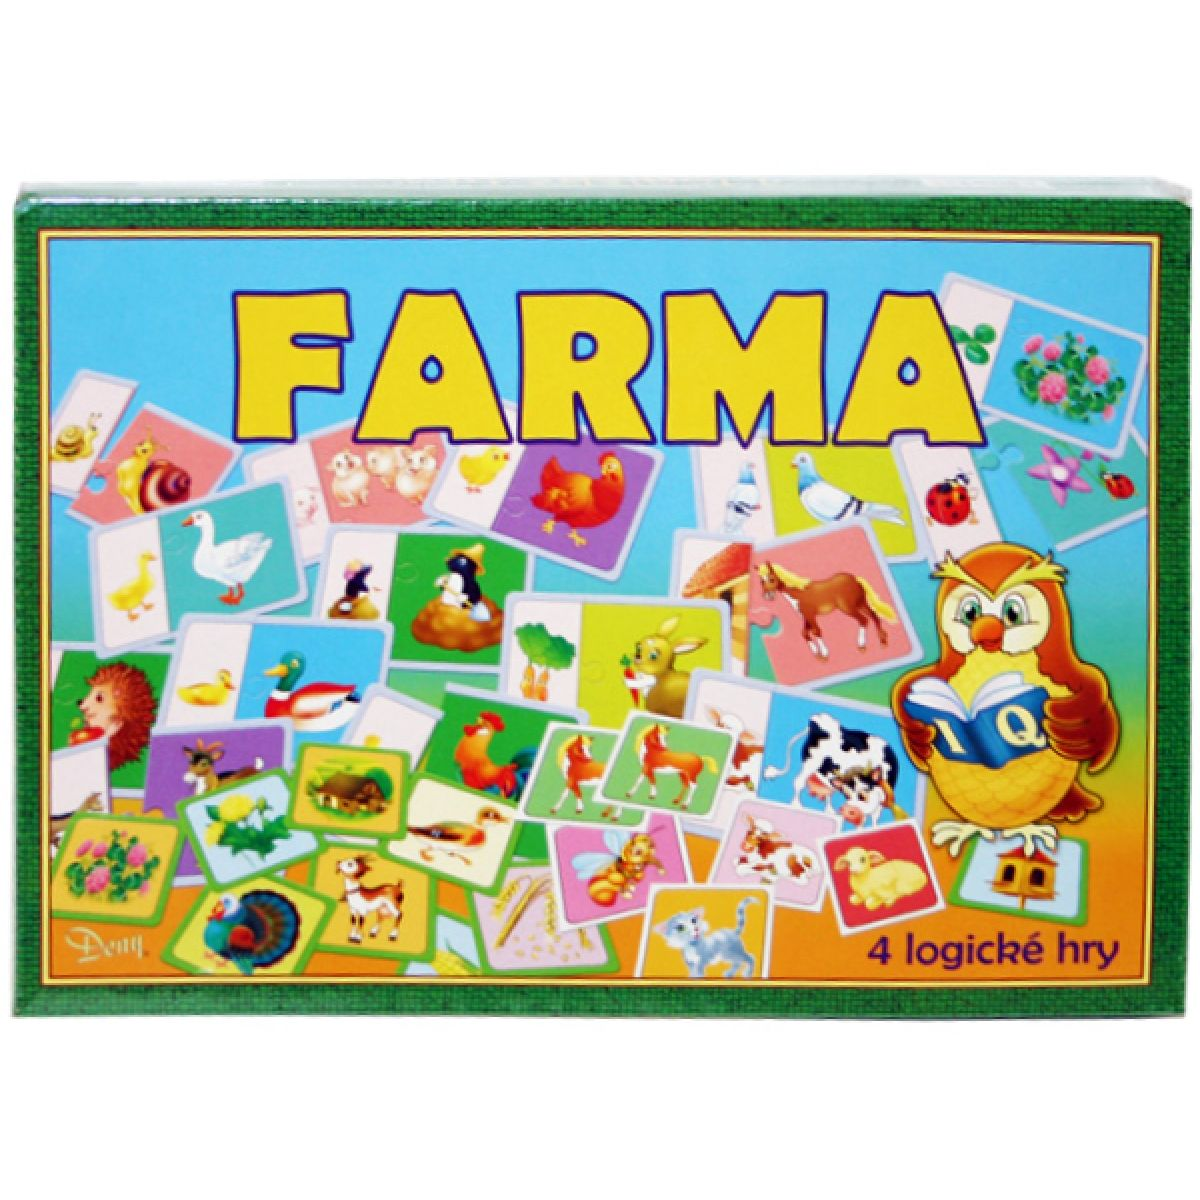 Teddies 170363 - Hra Farma